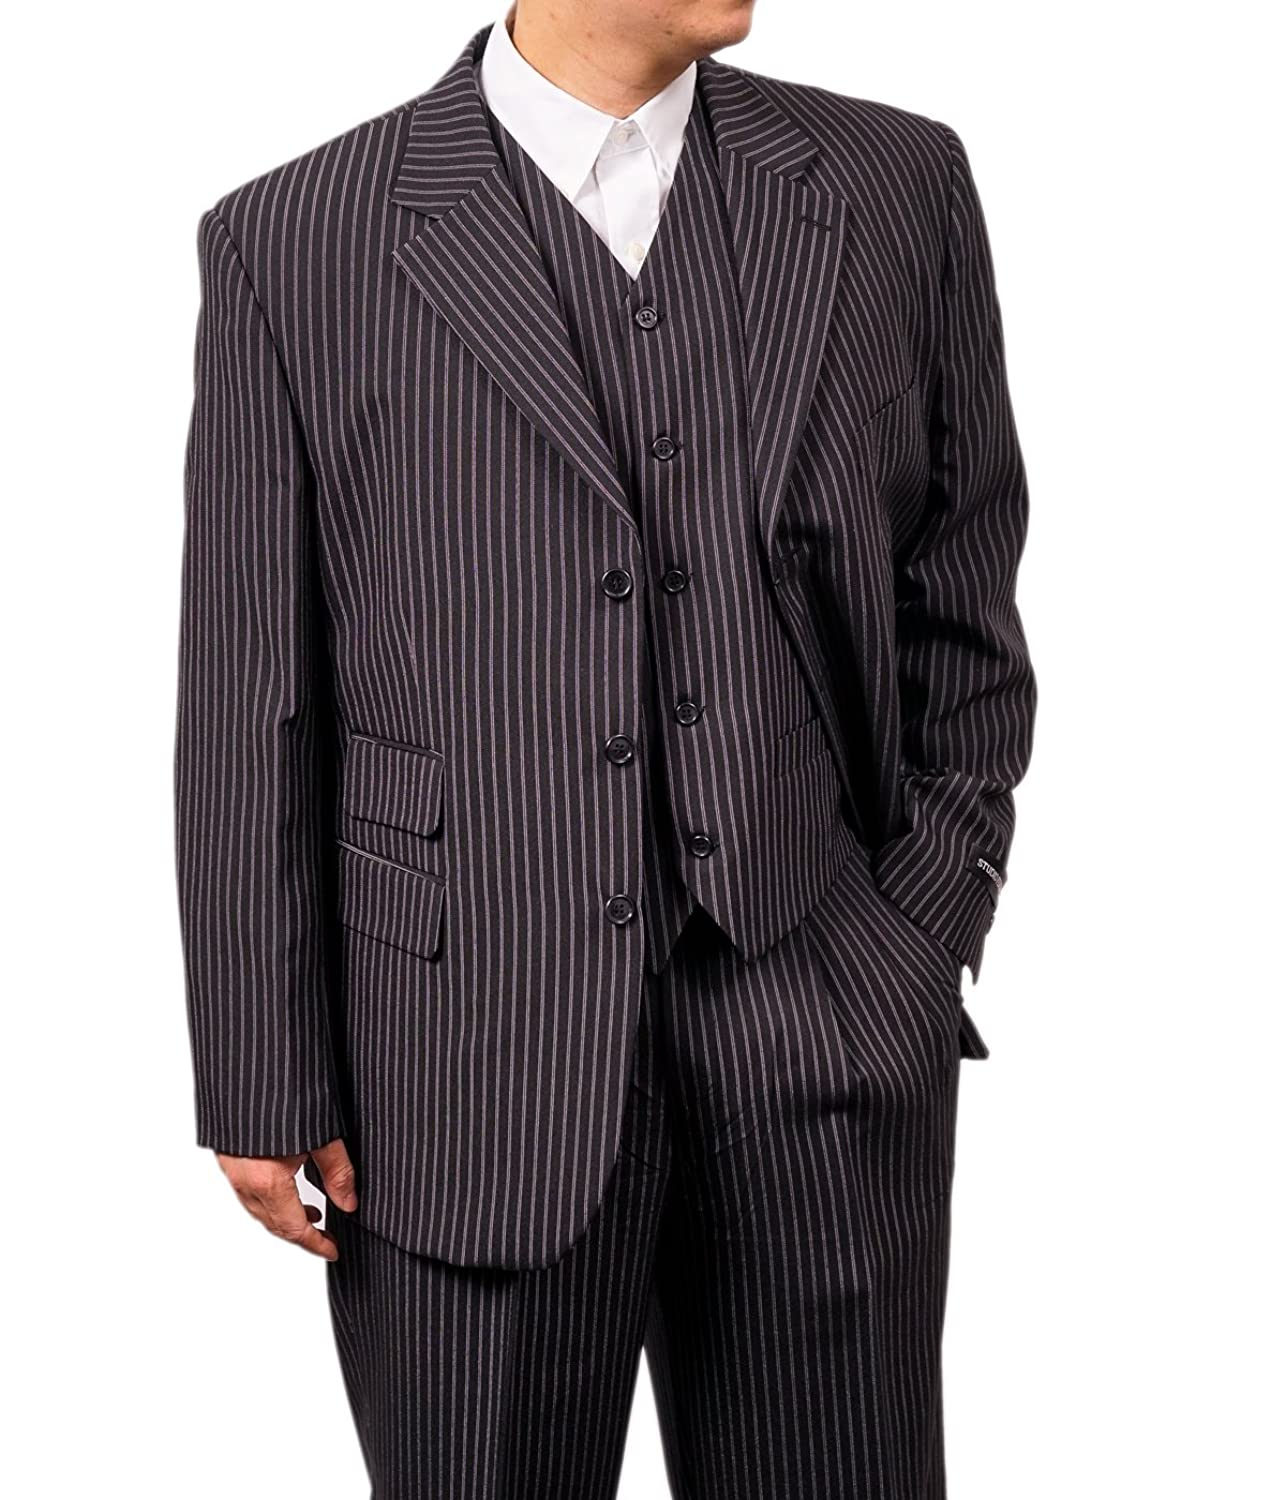 Retro Clothing for Men | Vintage Men's Fashion New Mens 3 Piece Black Gangster Pinstripe Dress Suit with Matching Vest $119.99 AT vintagedancer.com